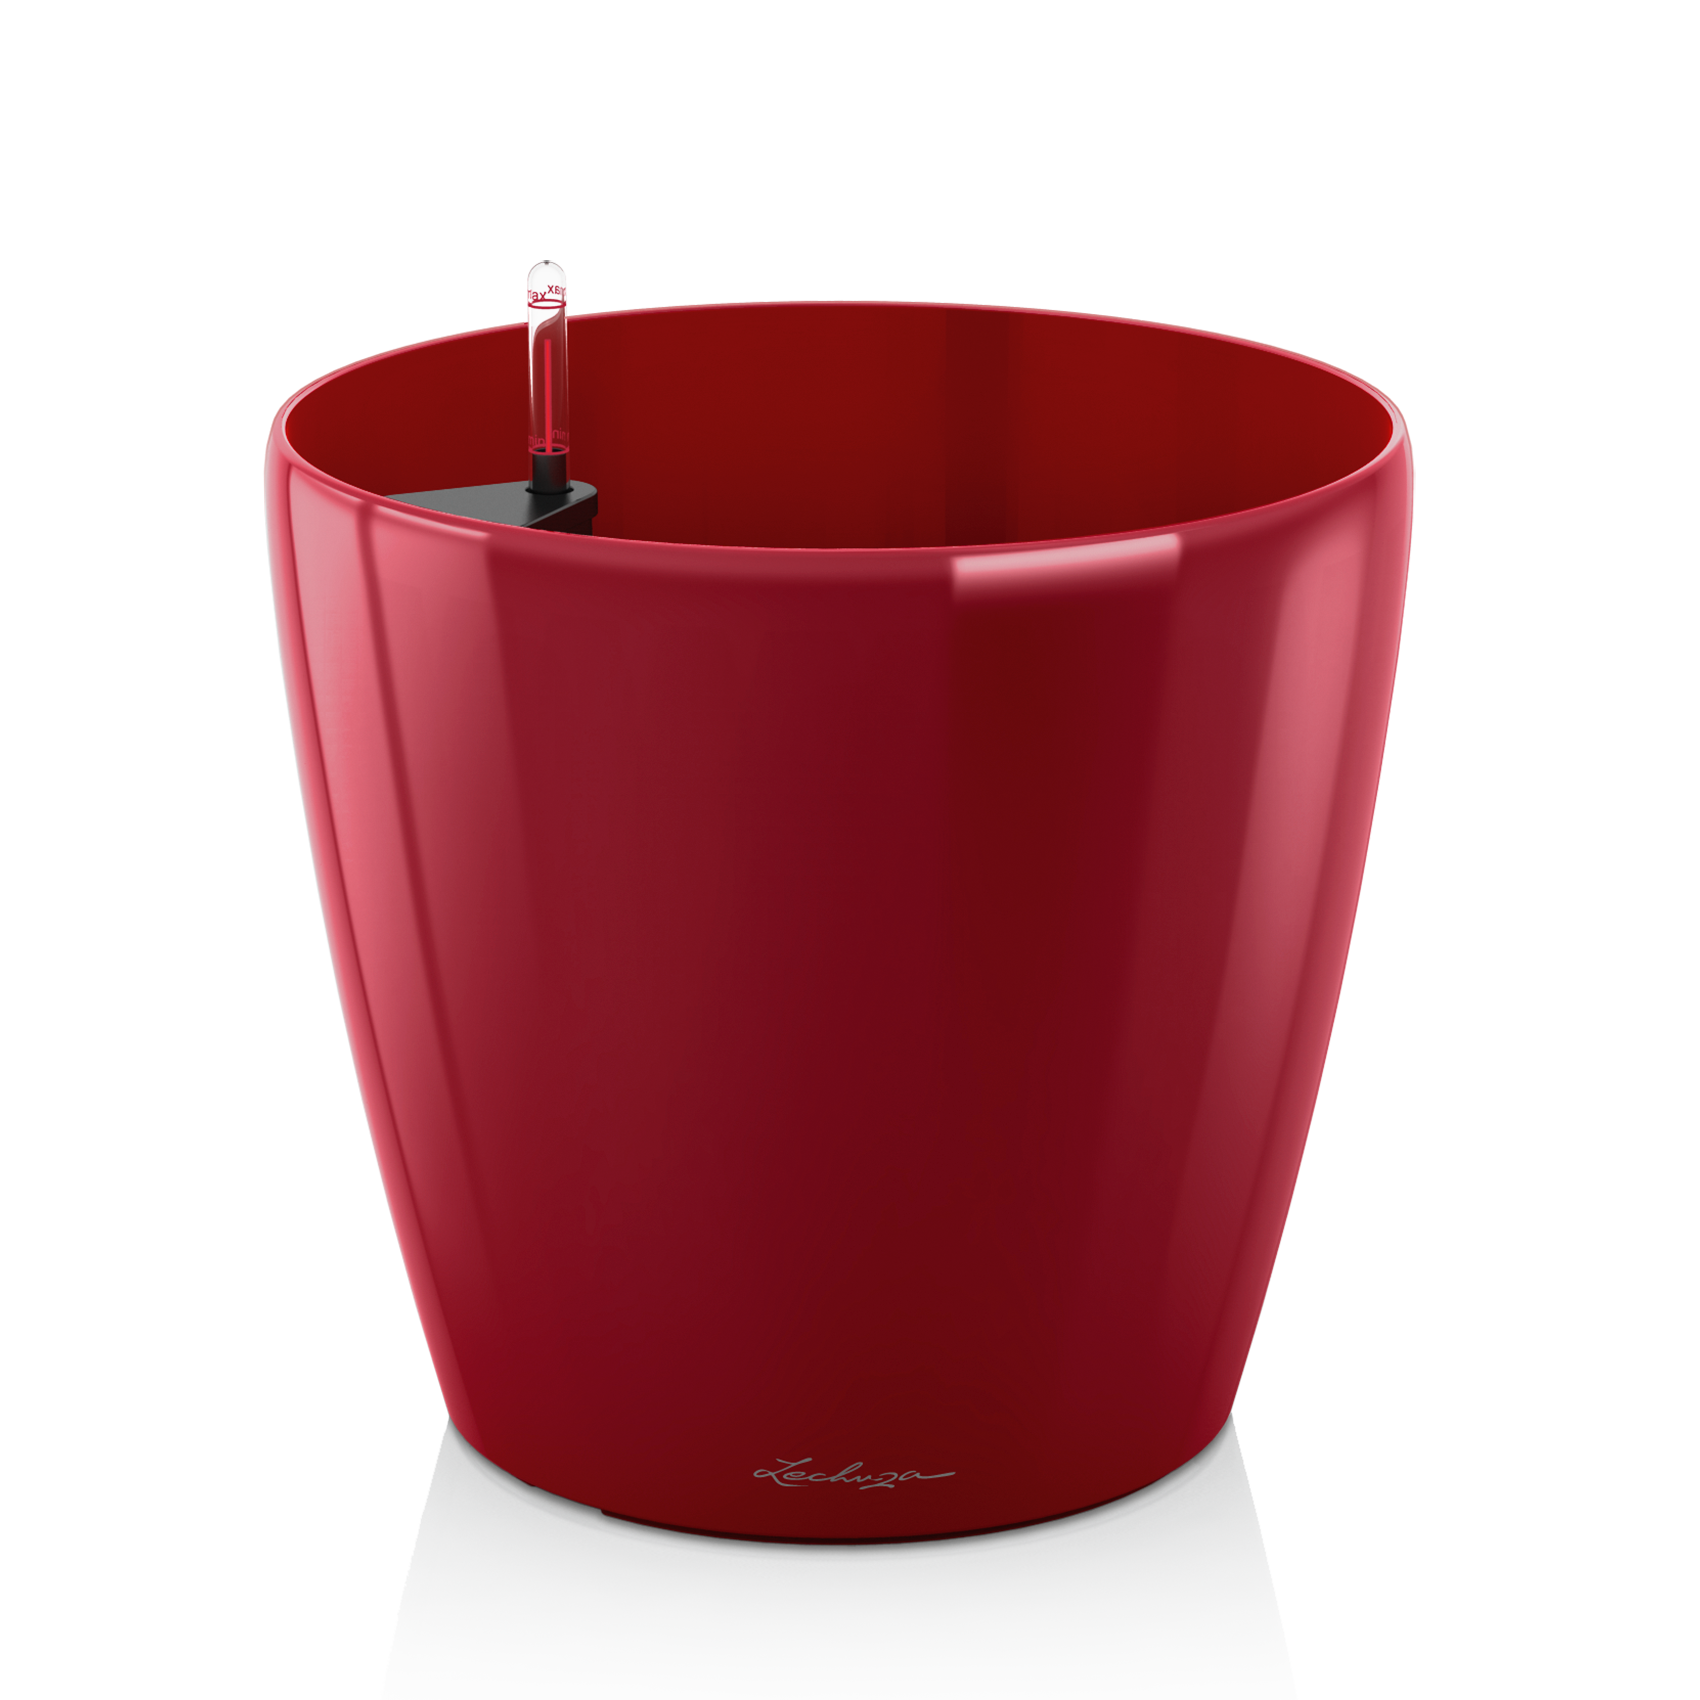 CLASSICO 70 scarlet red high-gloss